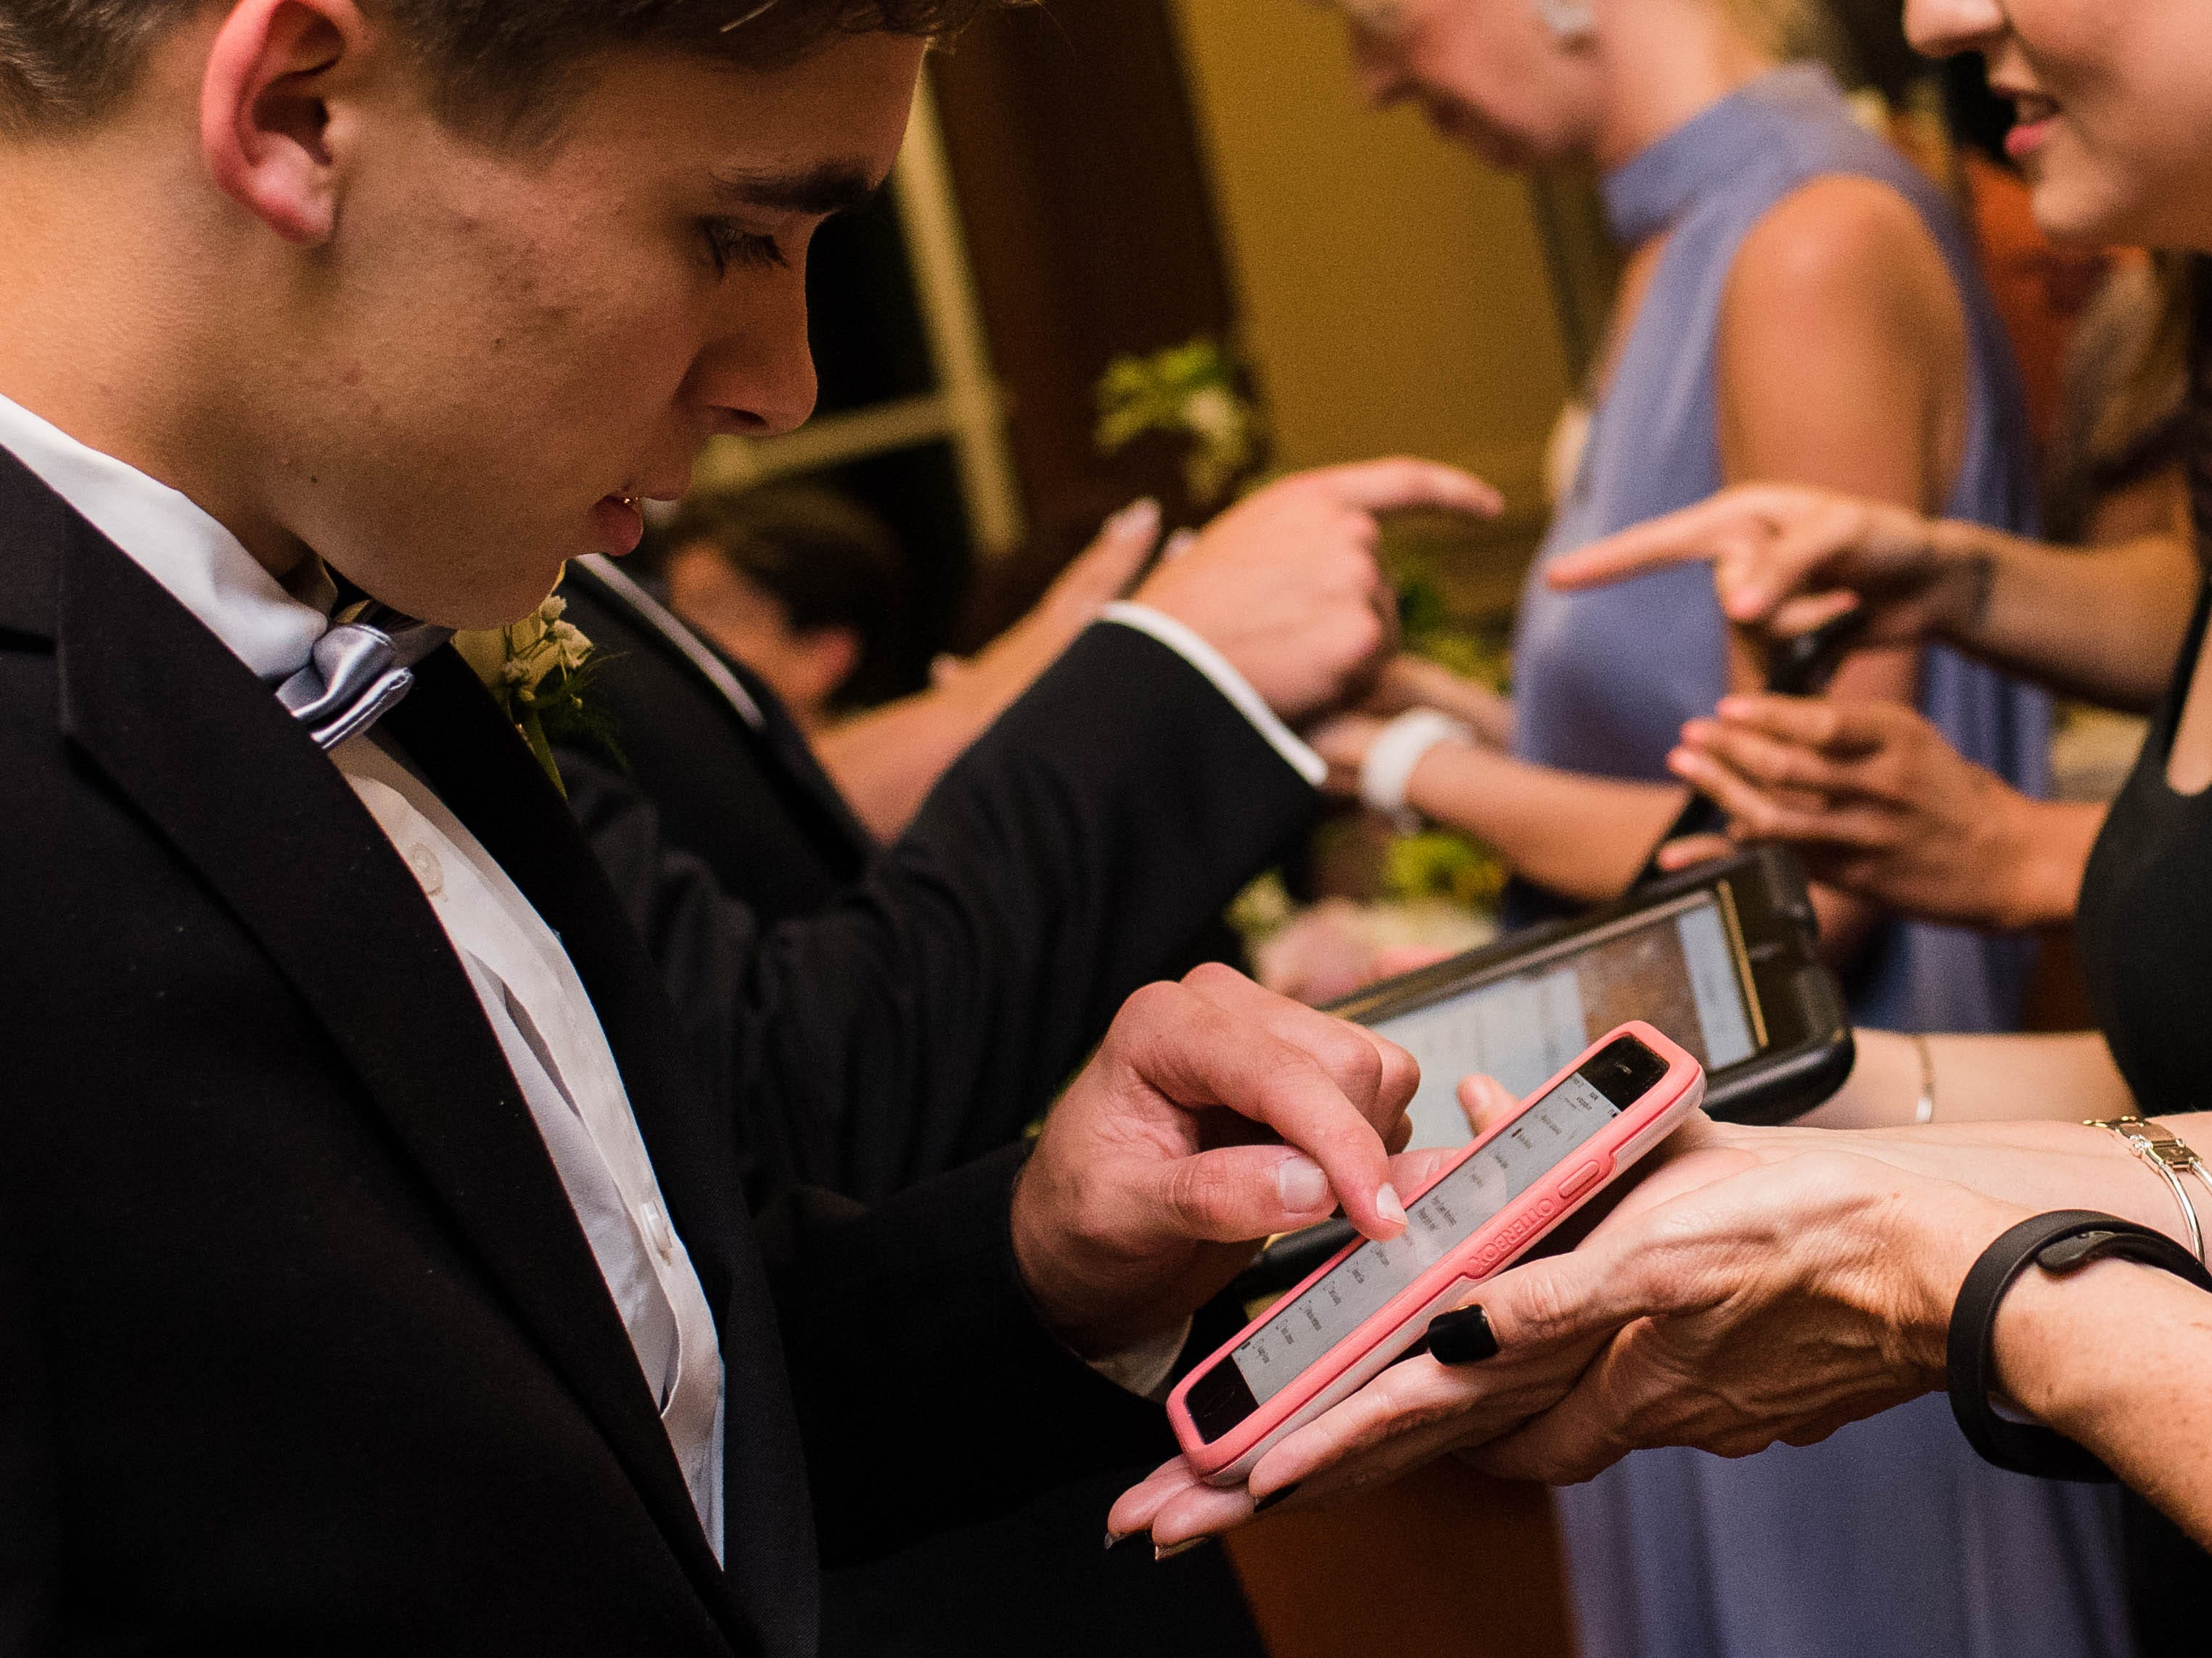 Digital check-in made arriving for Senior Prom at Valor Hall in Oak Grove, Kentucky an easy task for students and teachers alike.